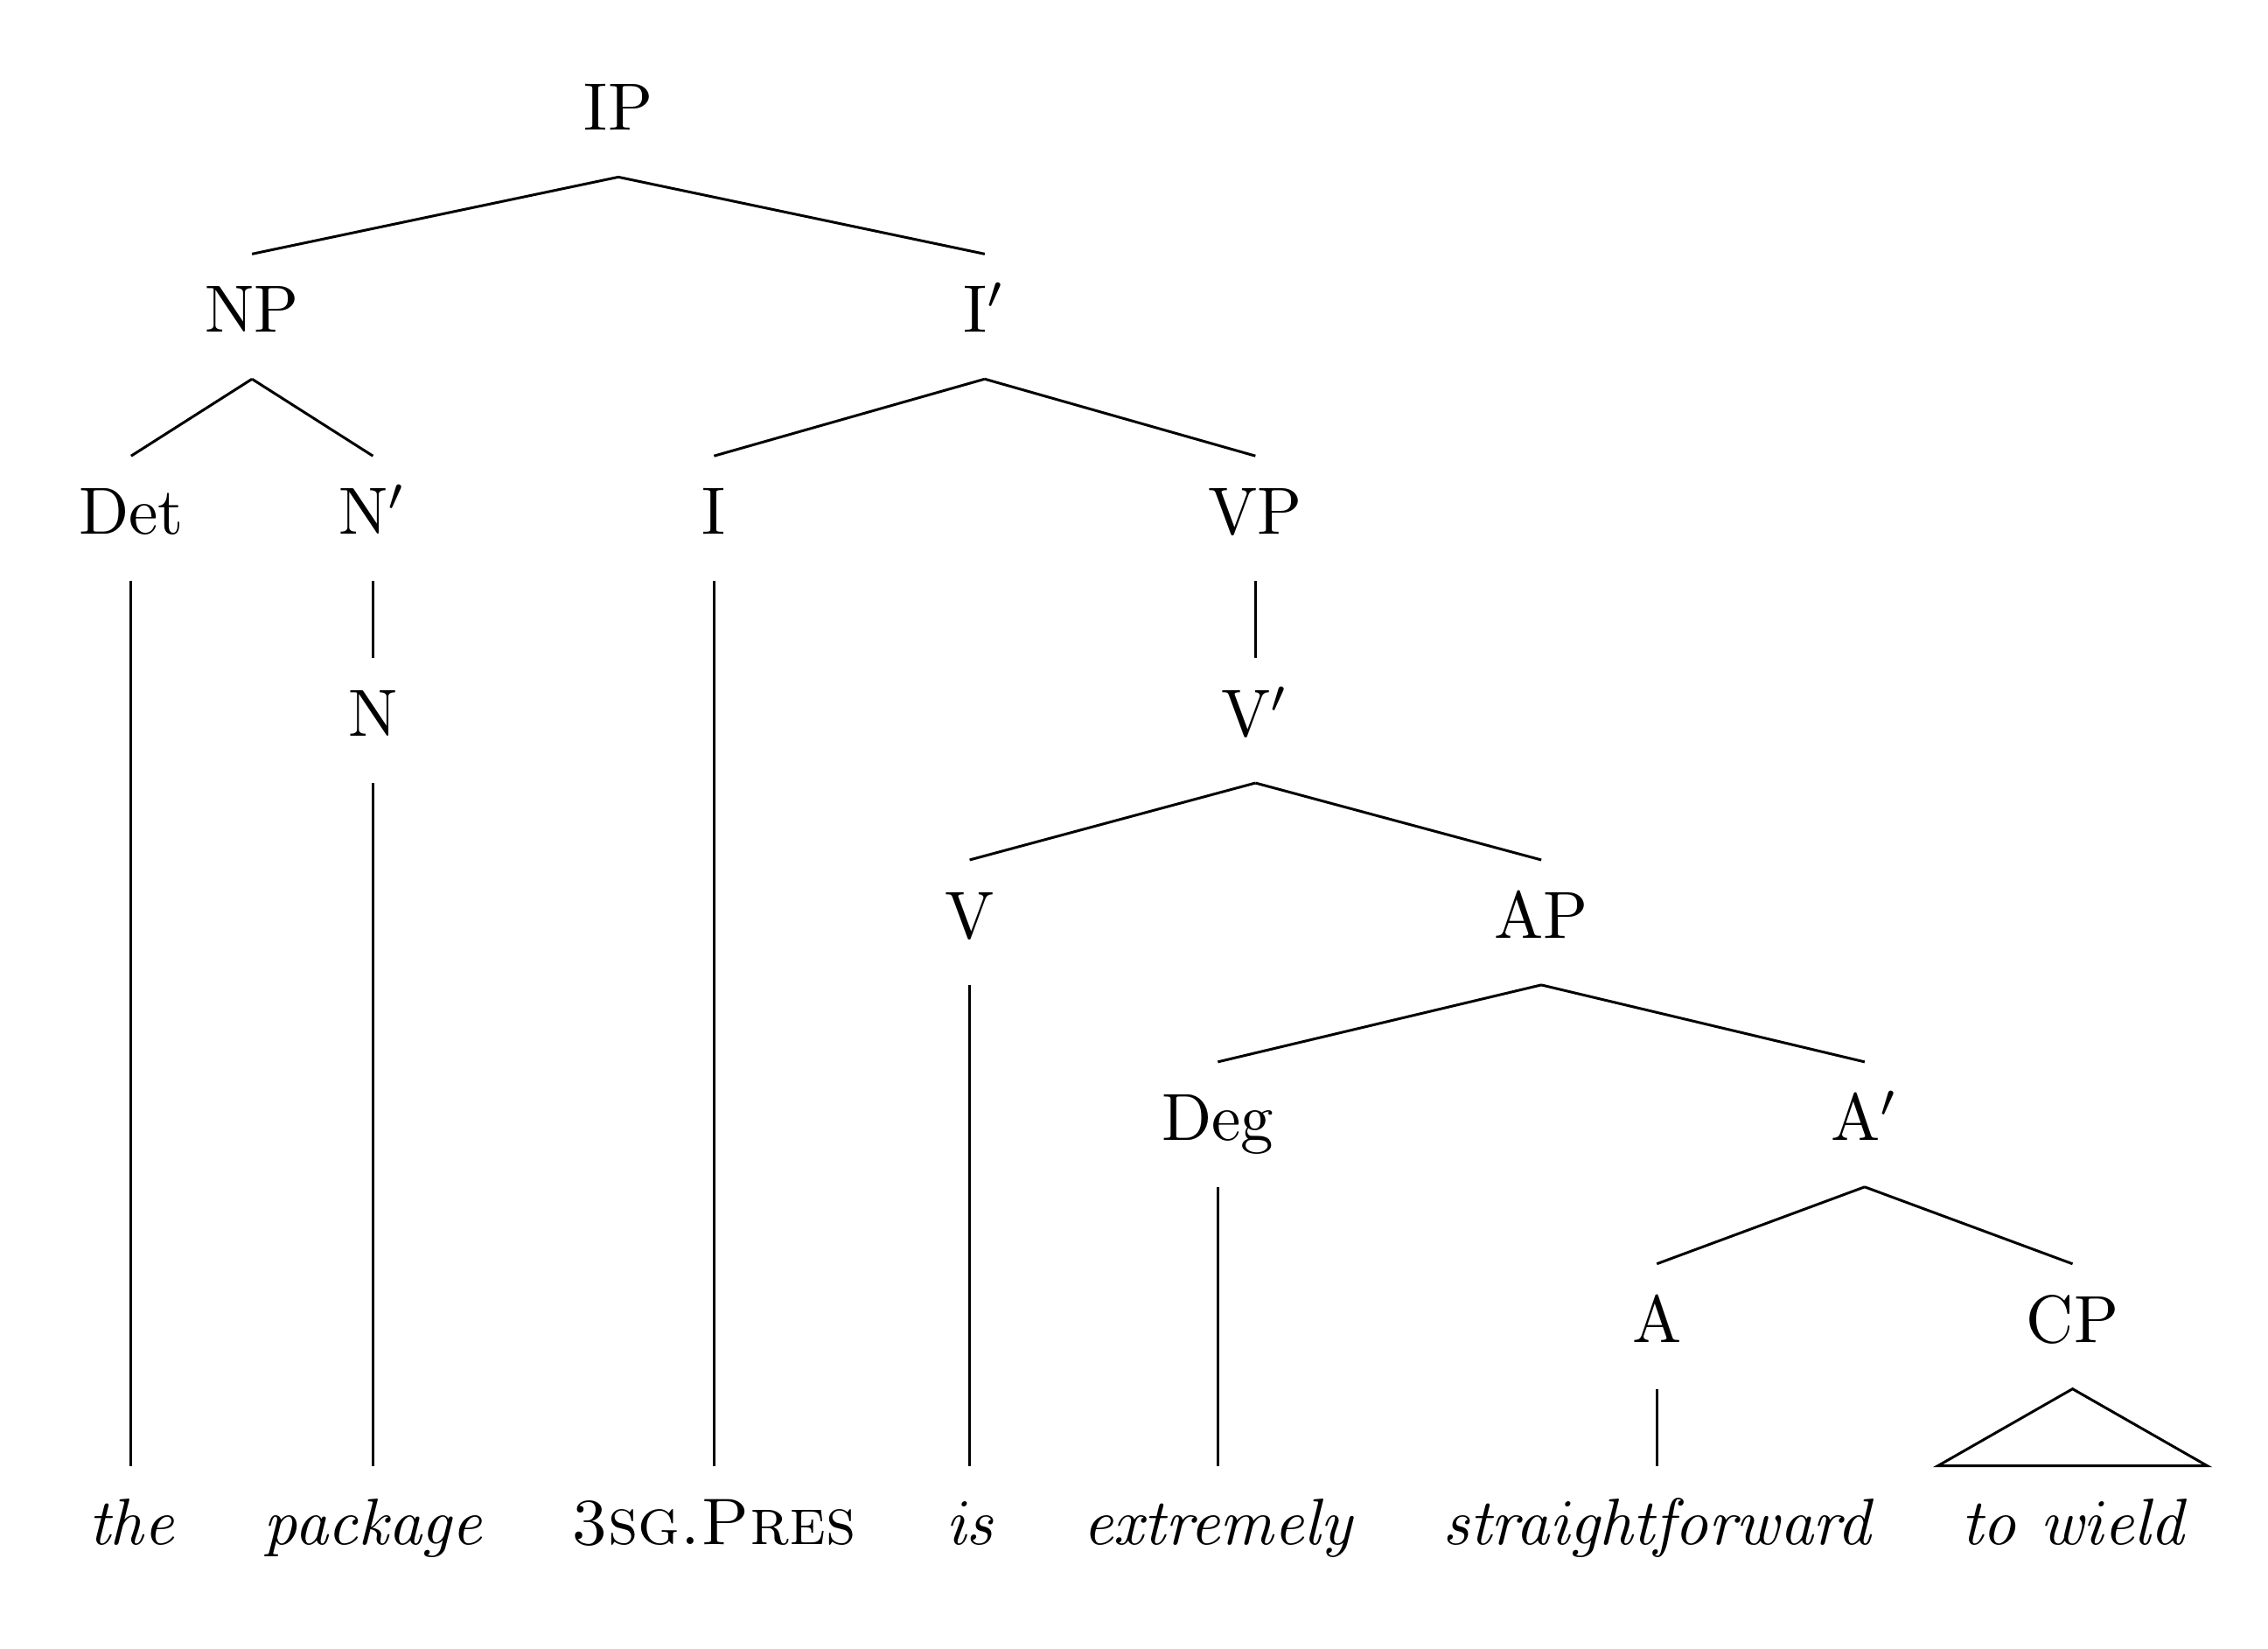 Tree Diagram Maker How To Draw Up A Hierarchical Tree Diagram For Taxonomic Wiring